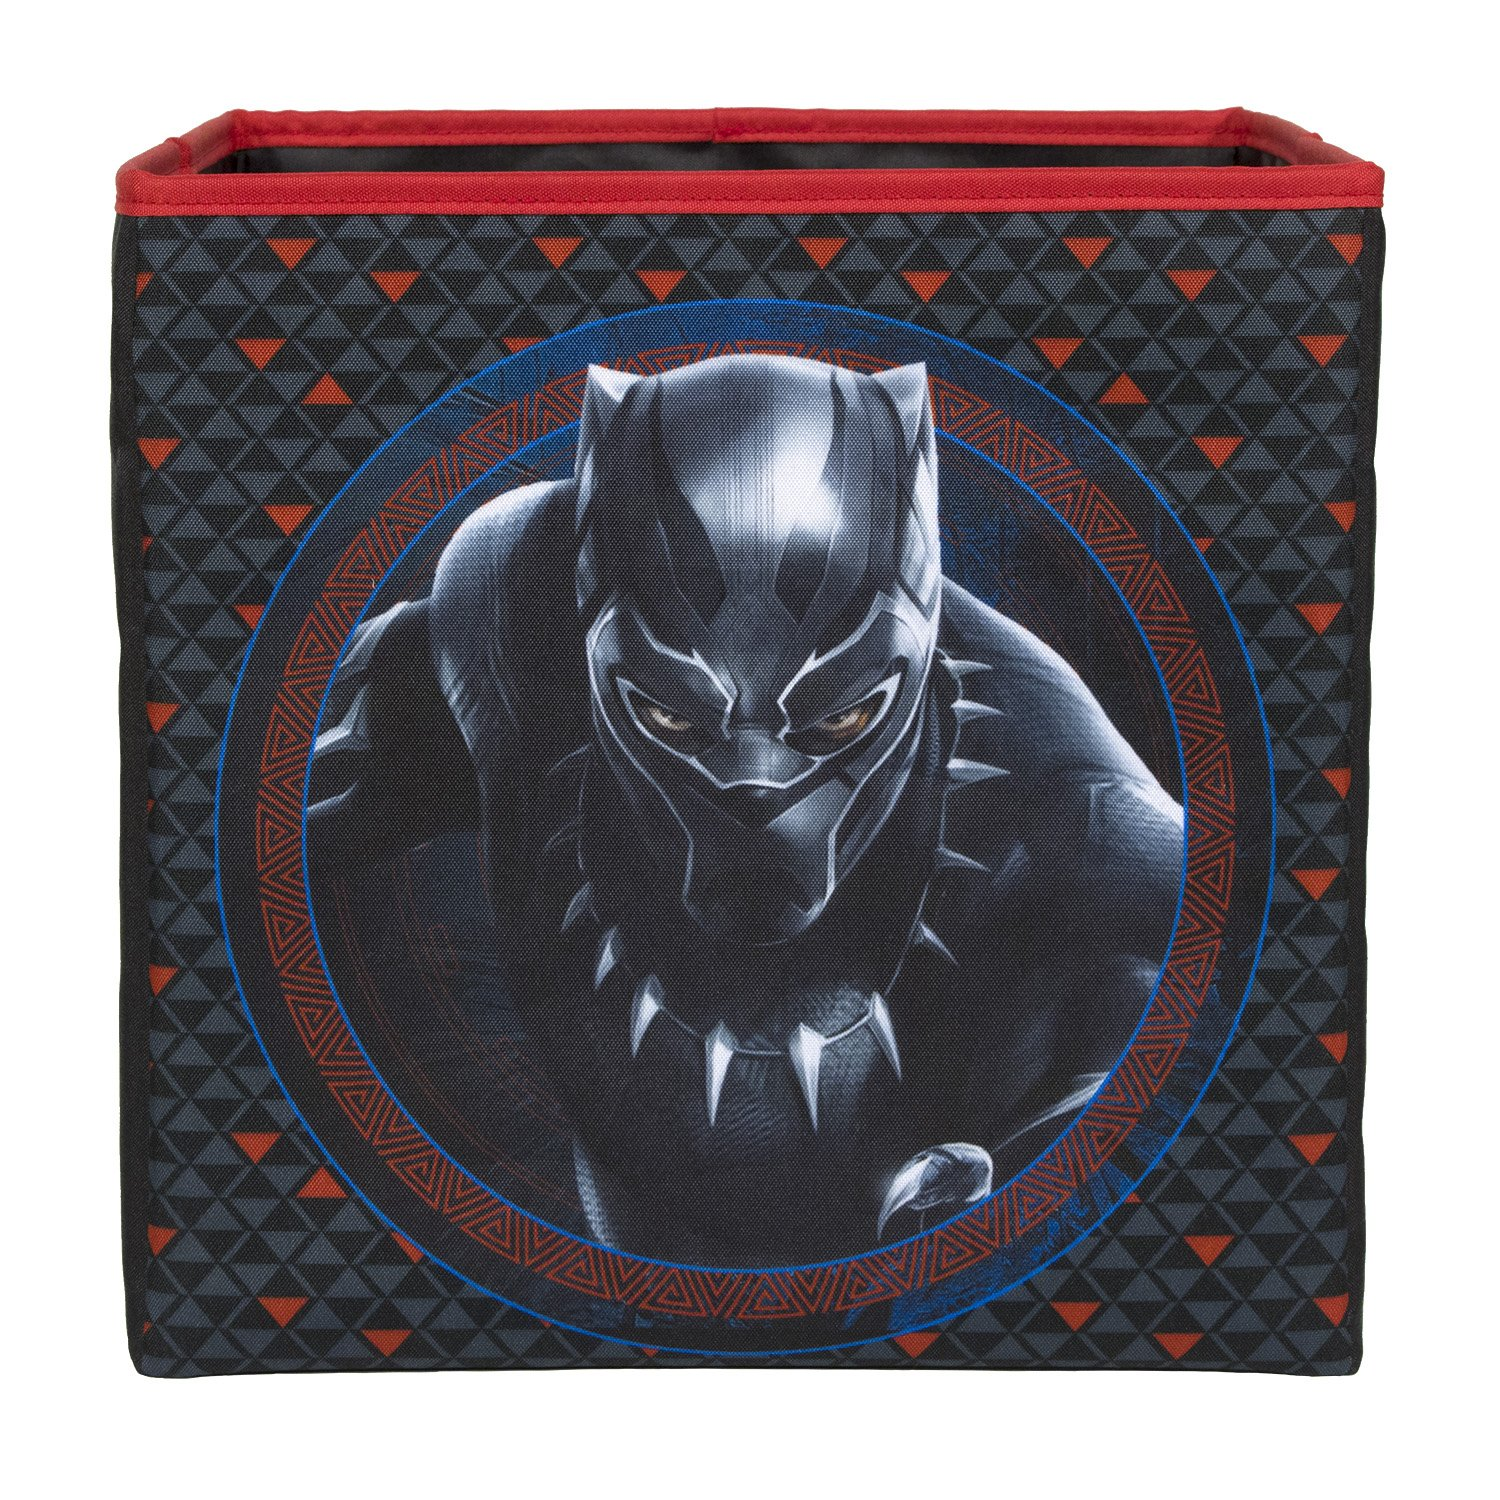 BriteLoft Marvel Black Panther Collapsible Storage Bin for Toys | Toy Box for Closet, Bedroom Organizer, Office Container | Storage Bin for Kids, Children's Stuffed Animals, Kids Toys